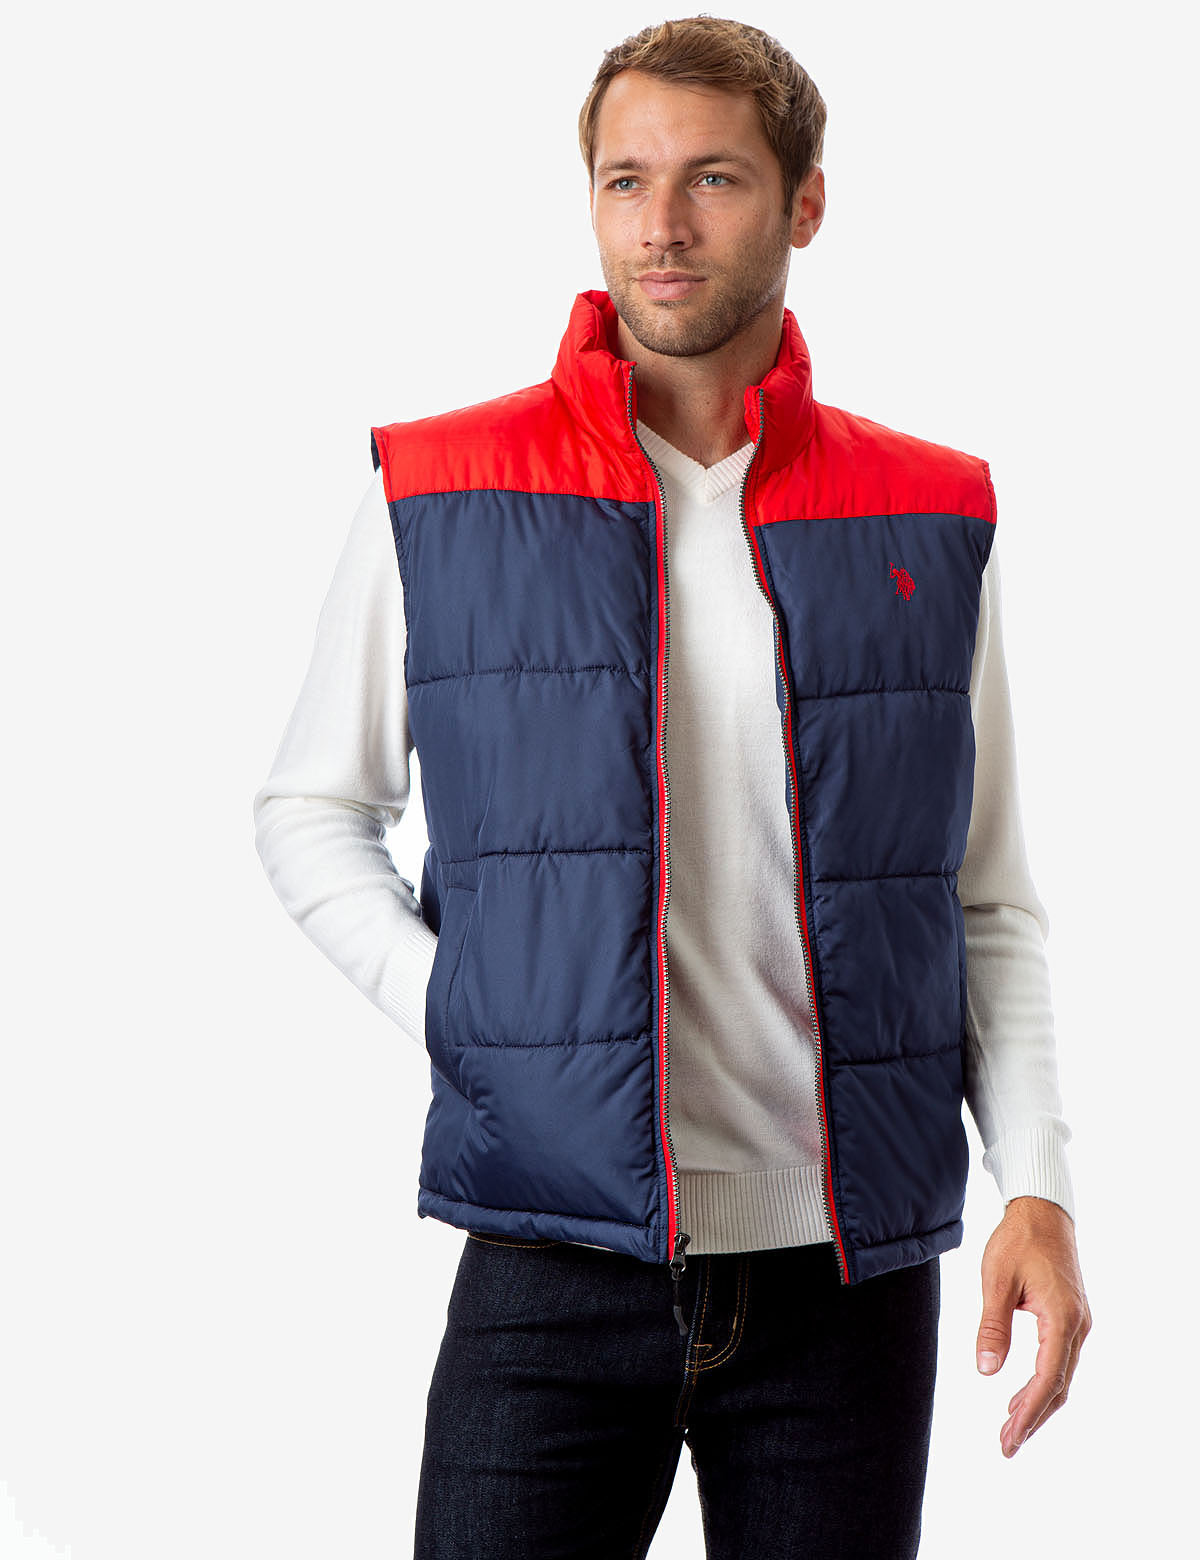 COLORBLOCK VEST - U.S. Polo Assn.